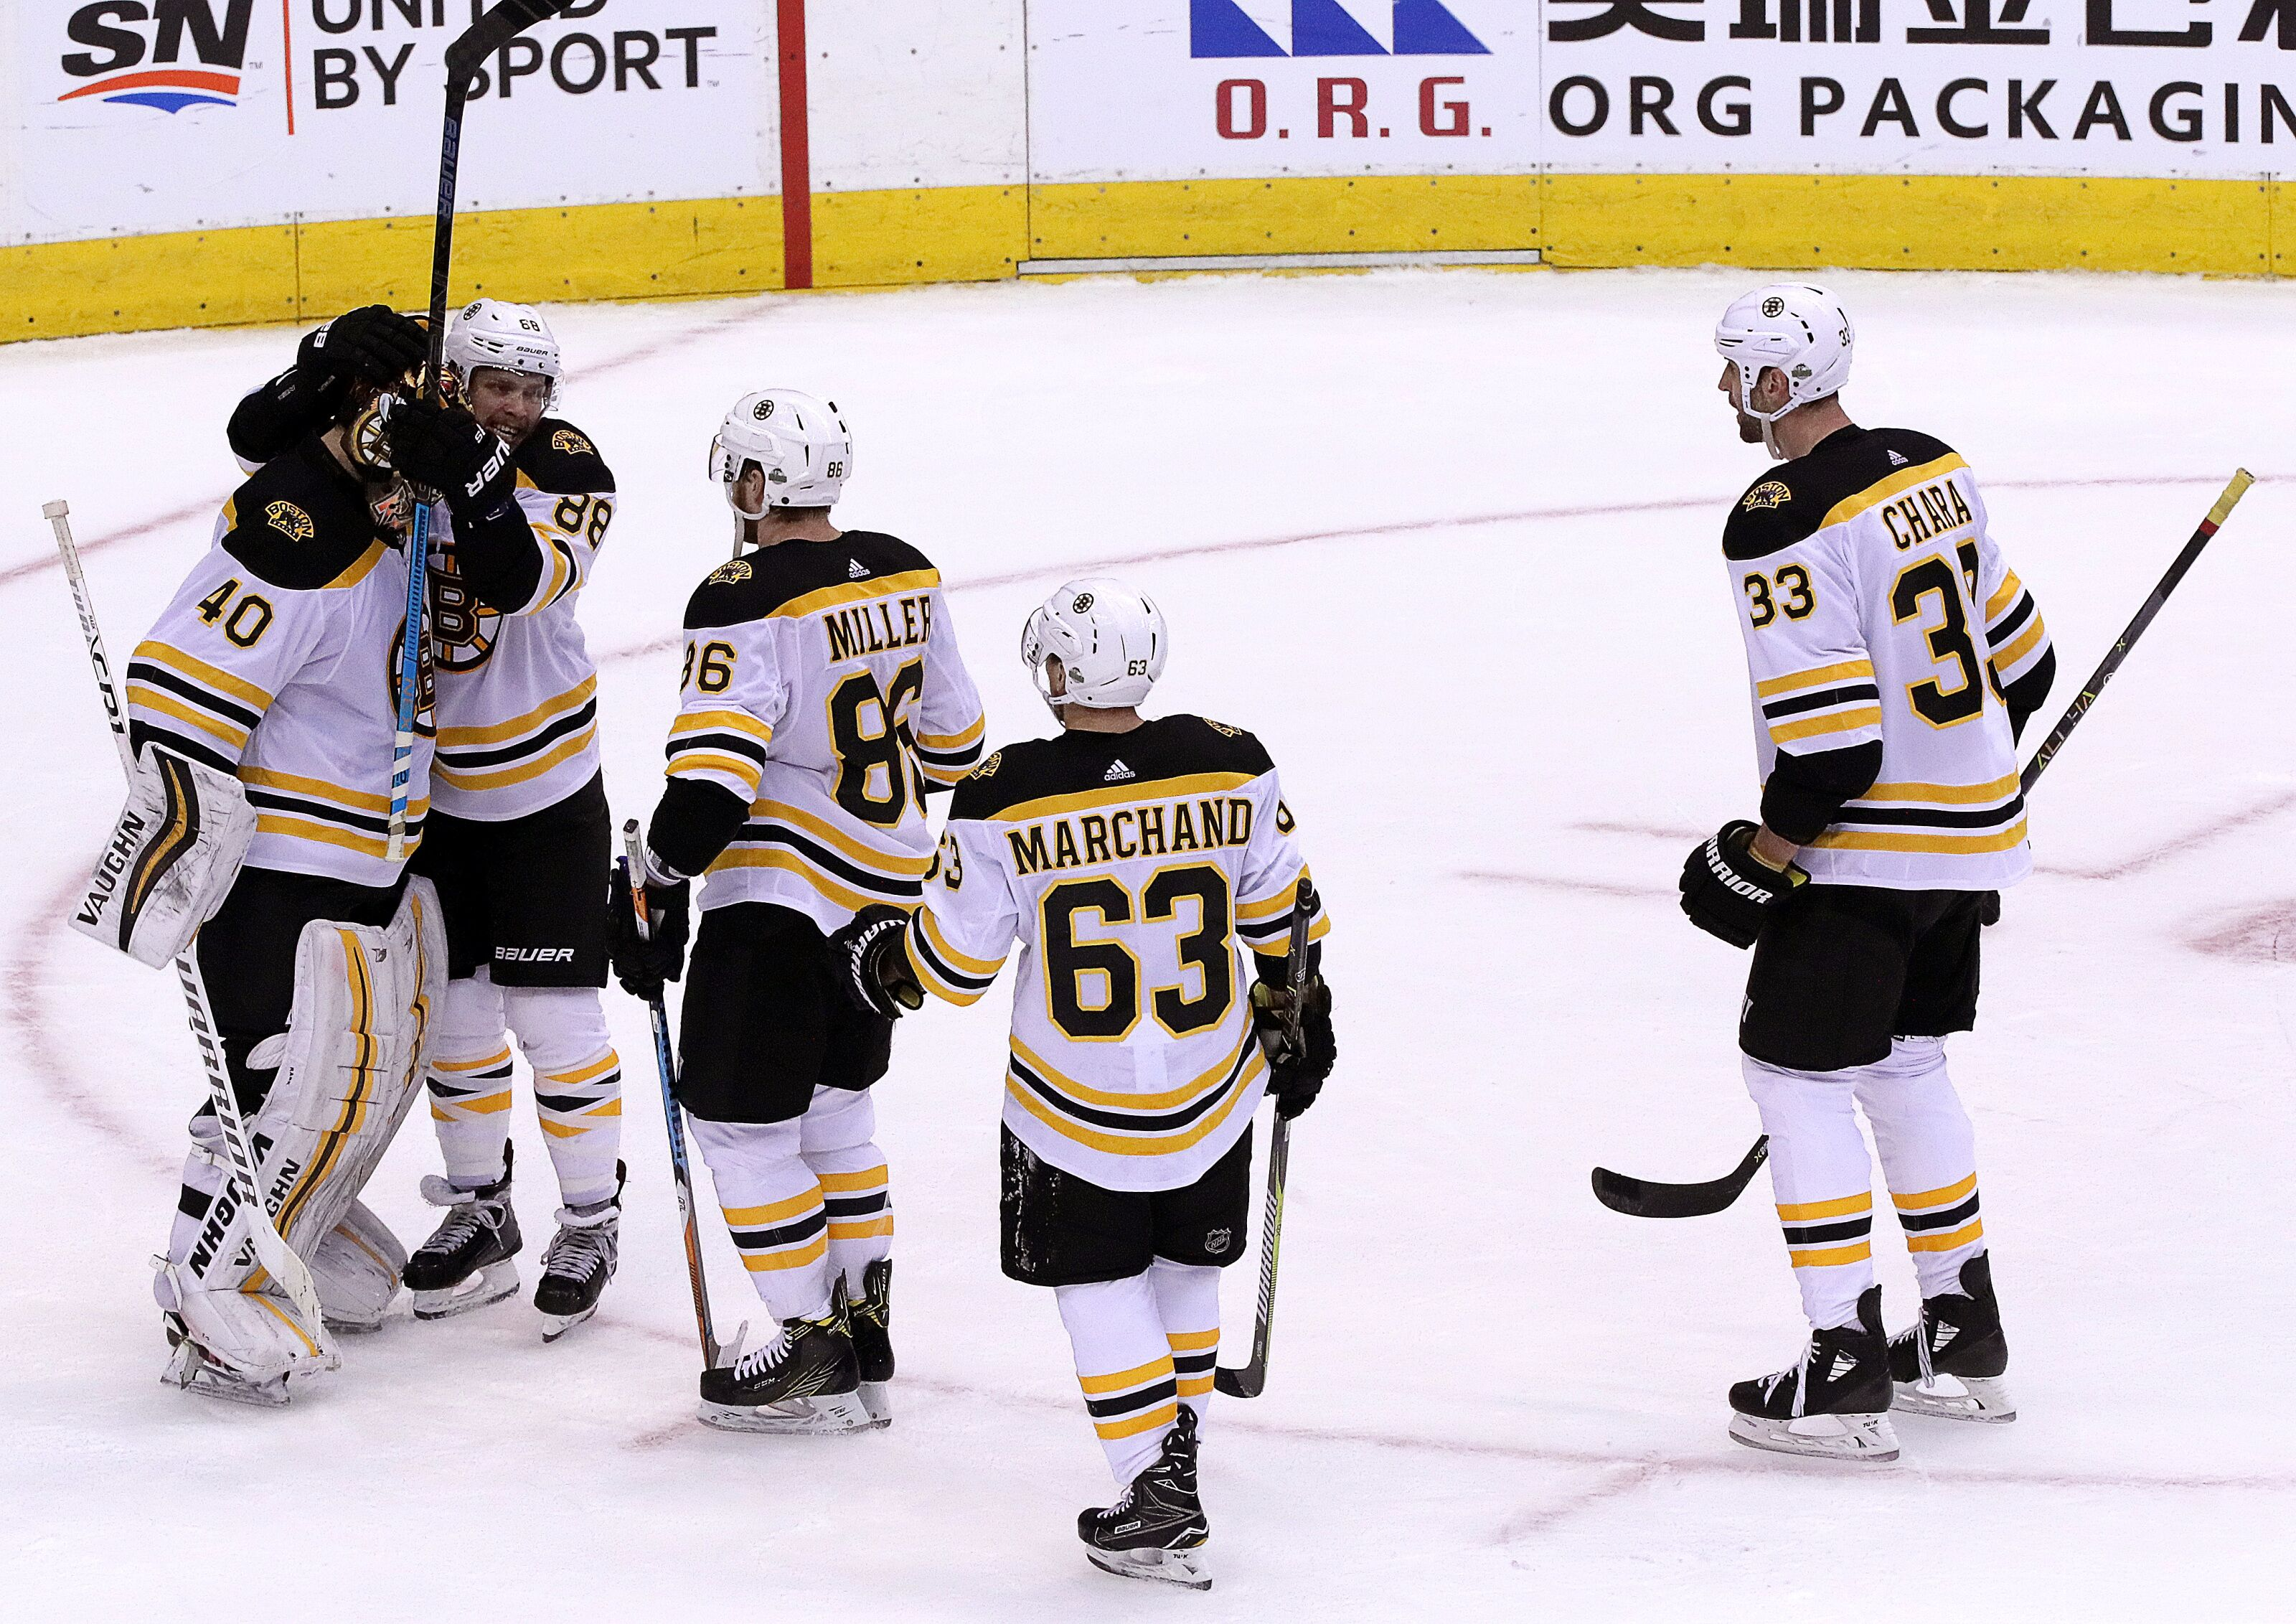 948885824-2018-stanley-cup-playoffs-boston-bruins-vs-toronto-maples-leafs-at-air-canada-centre.jpg